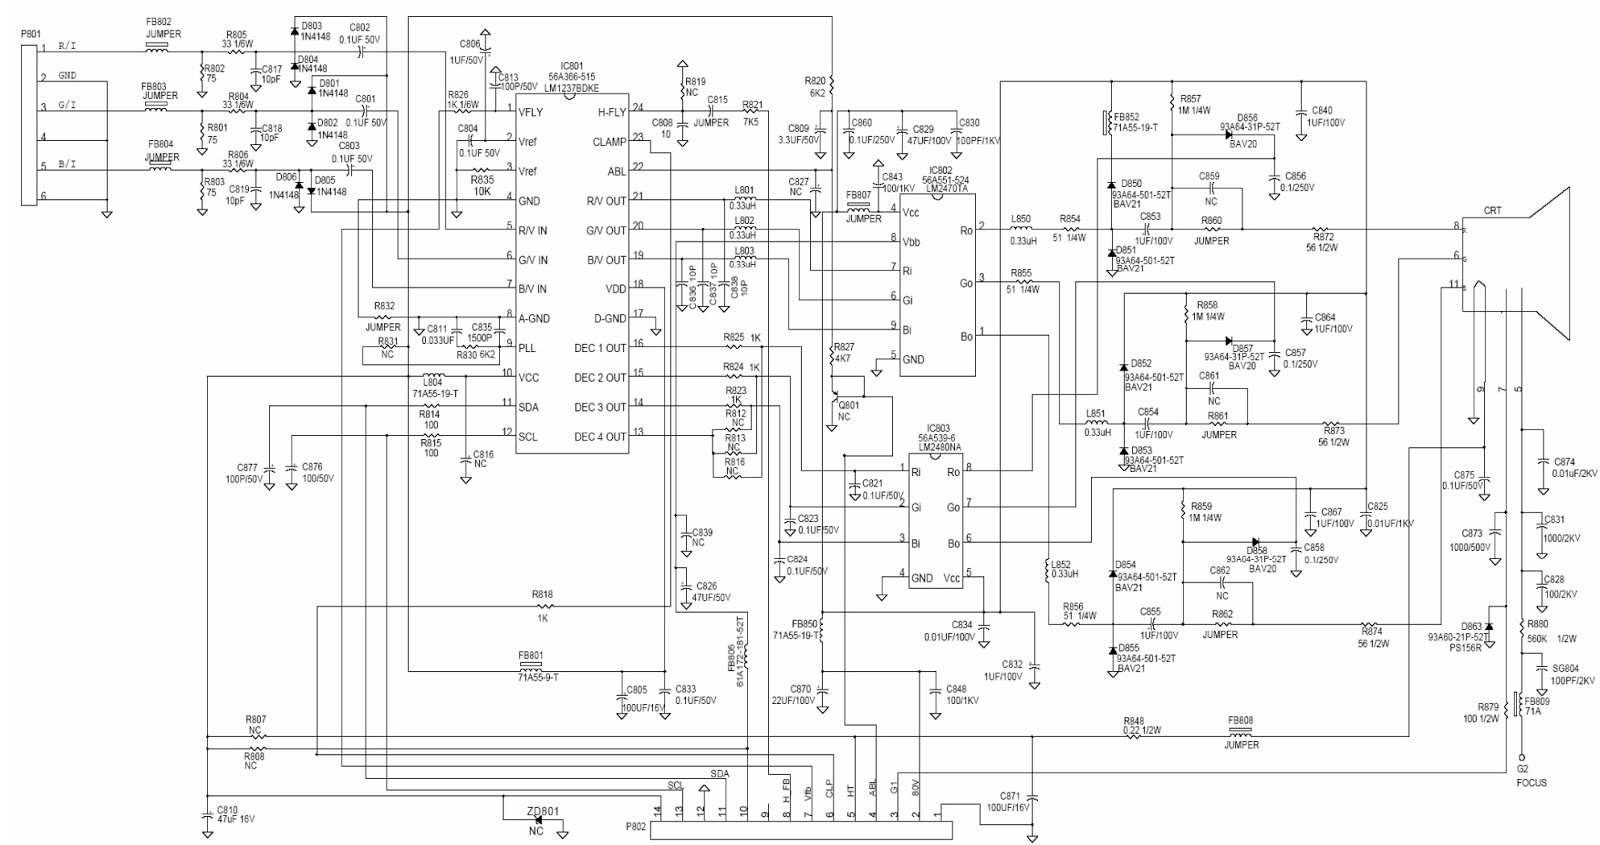 monitor wiring diagram wiring diagramcrt wiring diagram wiring diagram data  schemacrt monitor schematic diagram today diagram